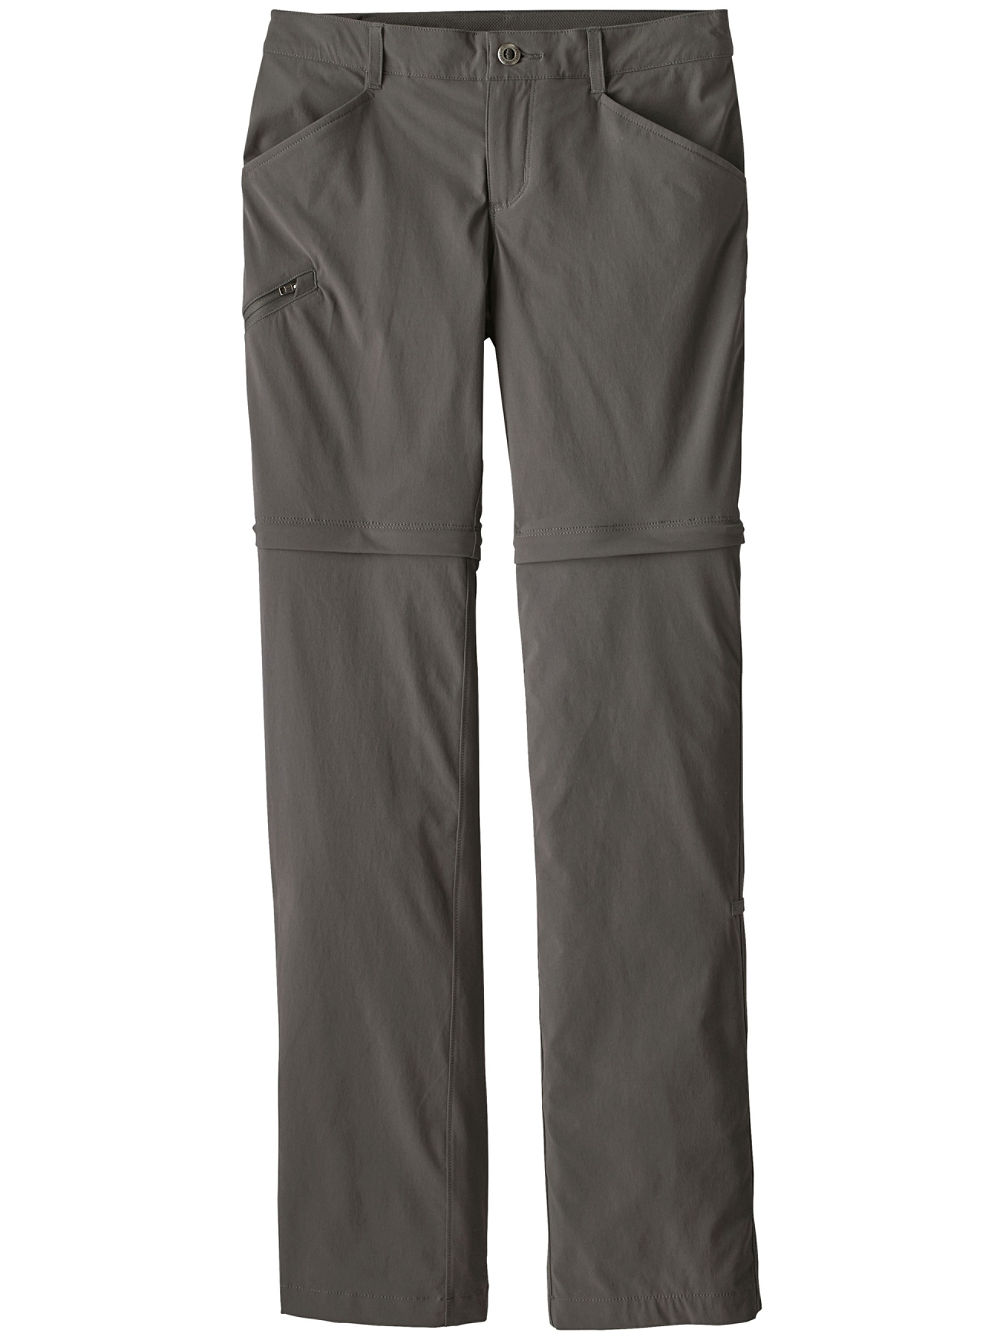 Quandary Convertible Regular Pants